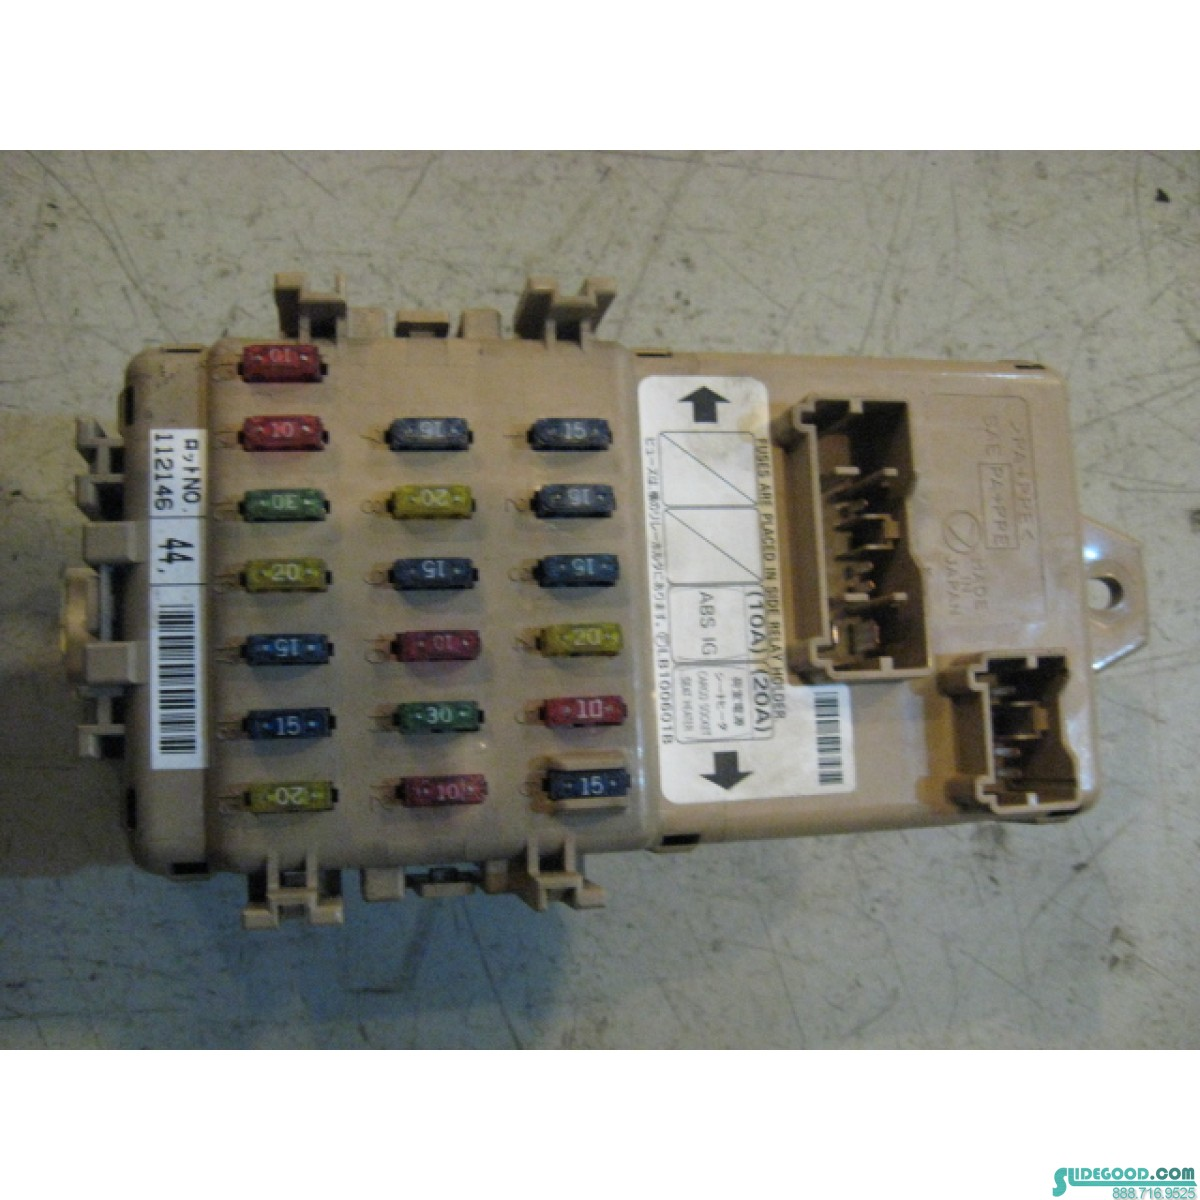 hight resolution of subaru impreza fuse box